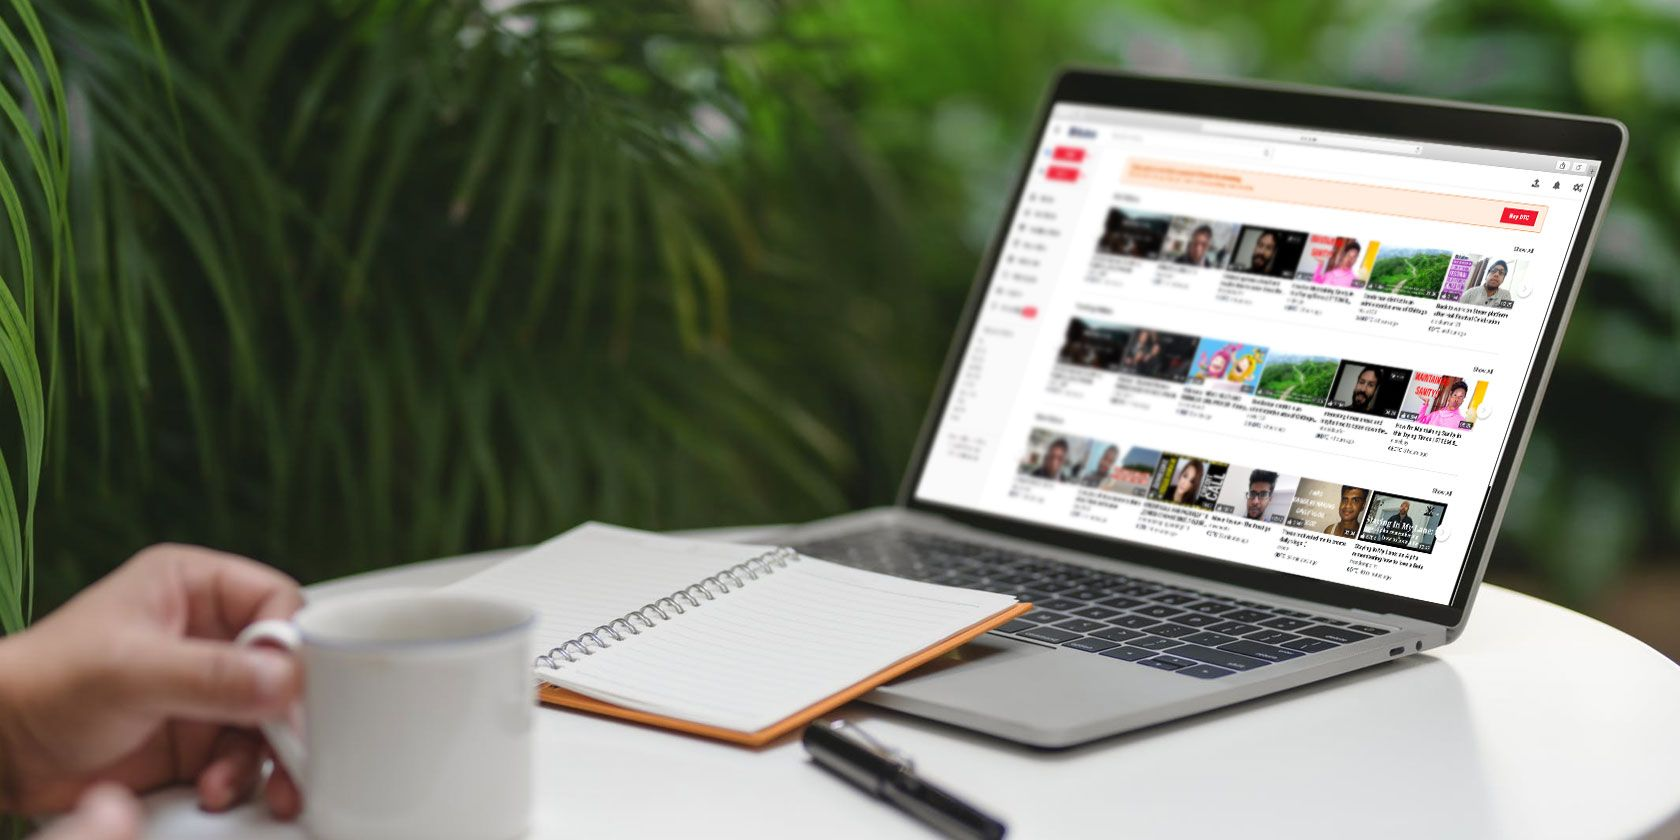 8 Reasons to Switch From YouTube to DTube